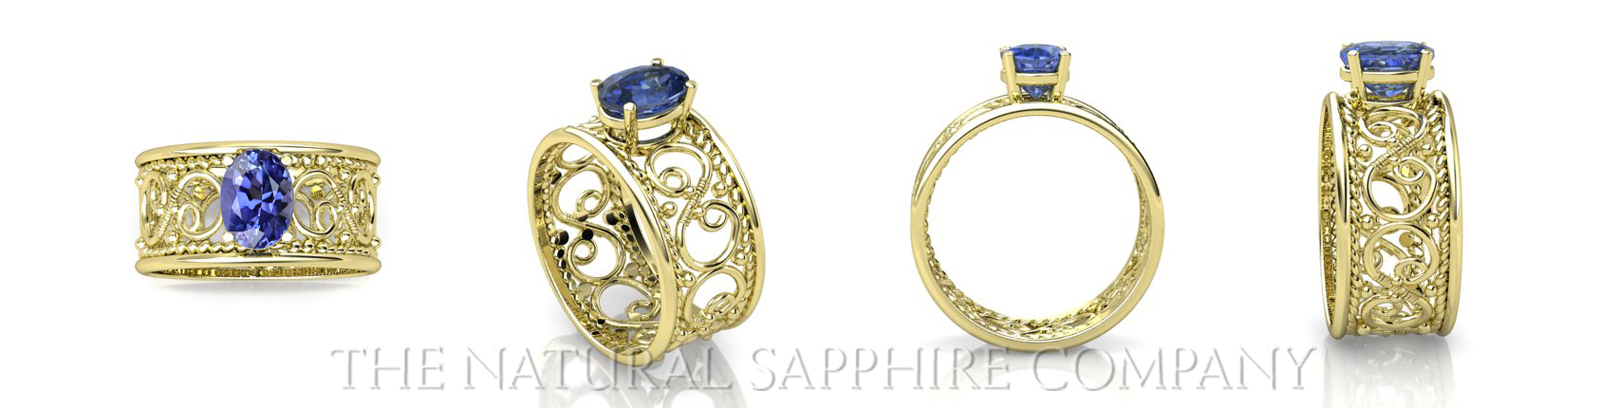 different views of blue sapphire rings in yellow gold